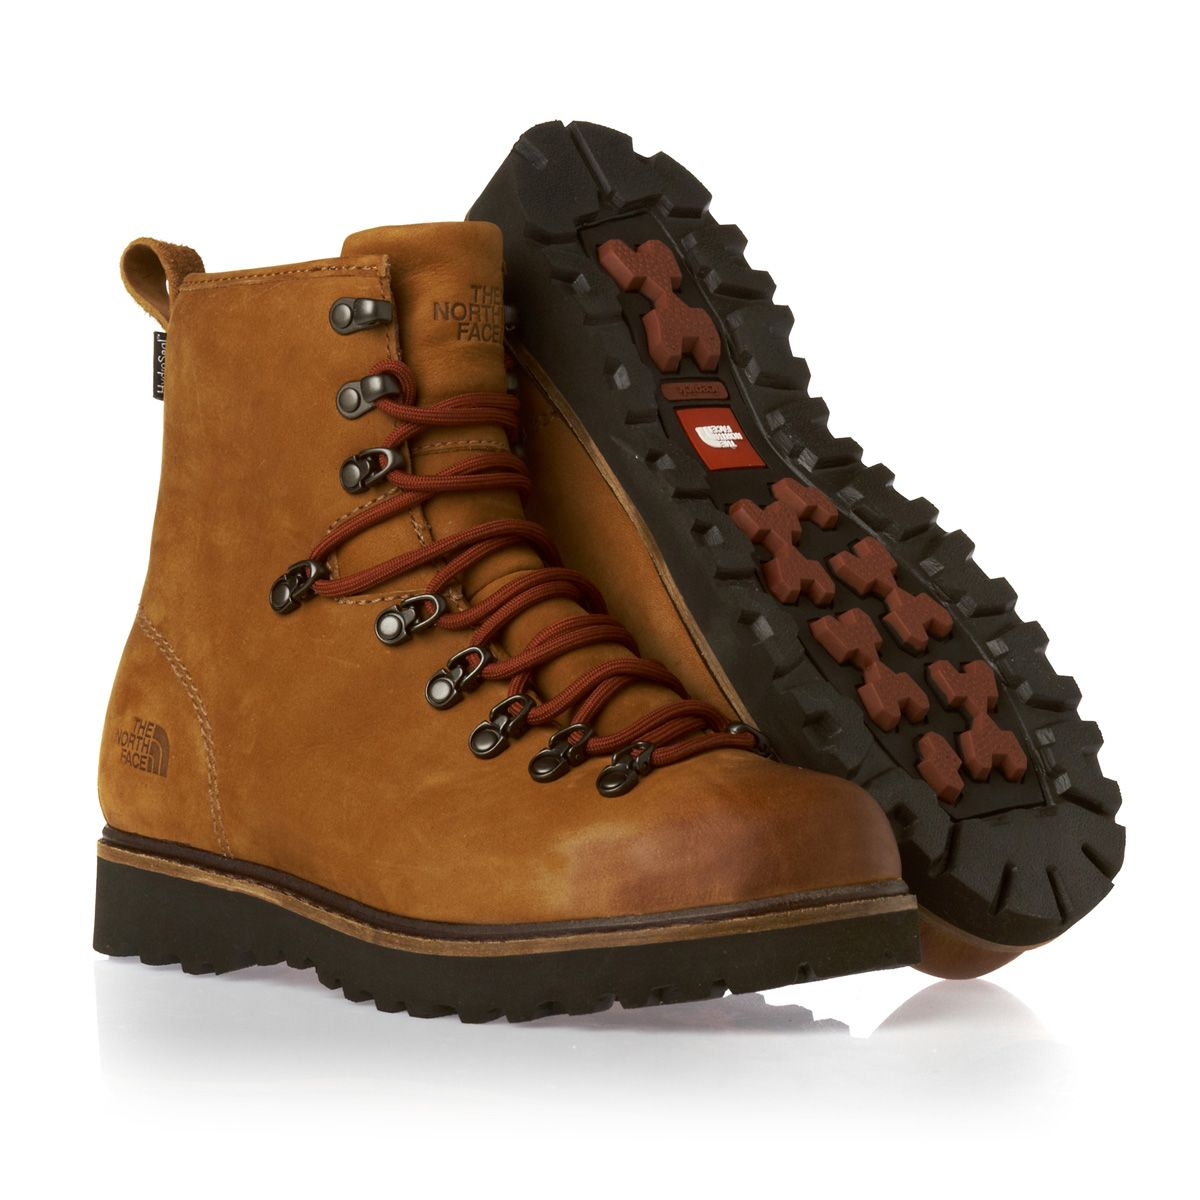 The North Face Ballard Boots - Camel Brown Slickrock Red. Full leather  upper bb06b008d1b